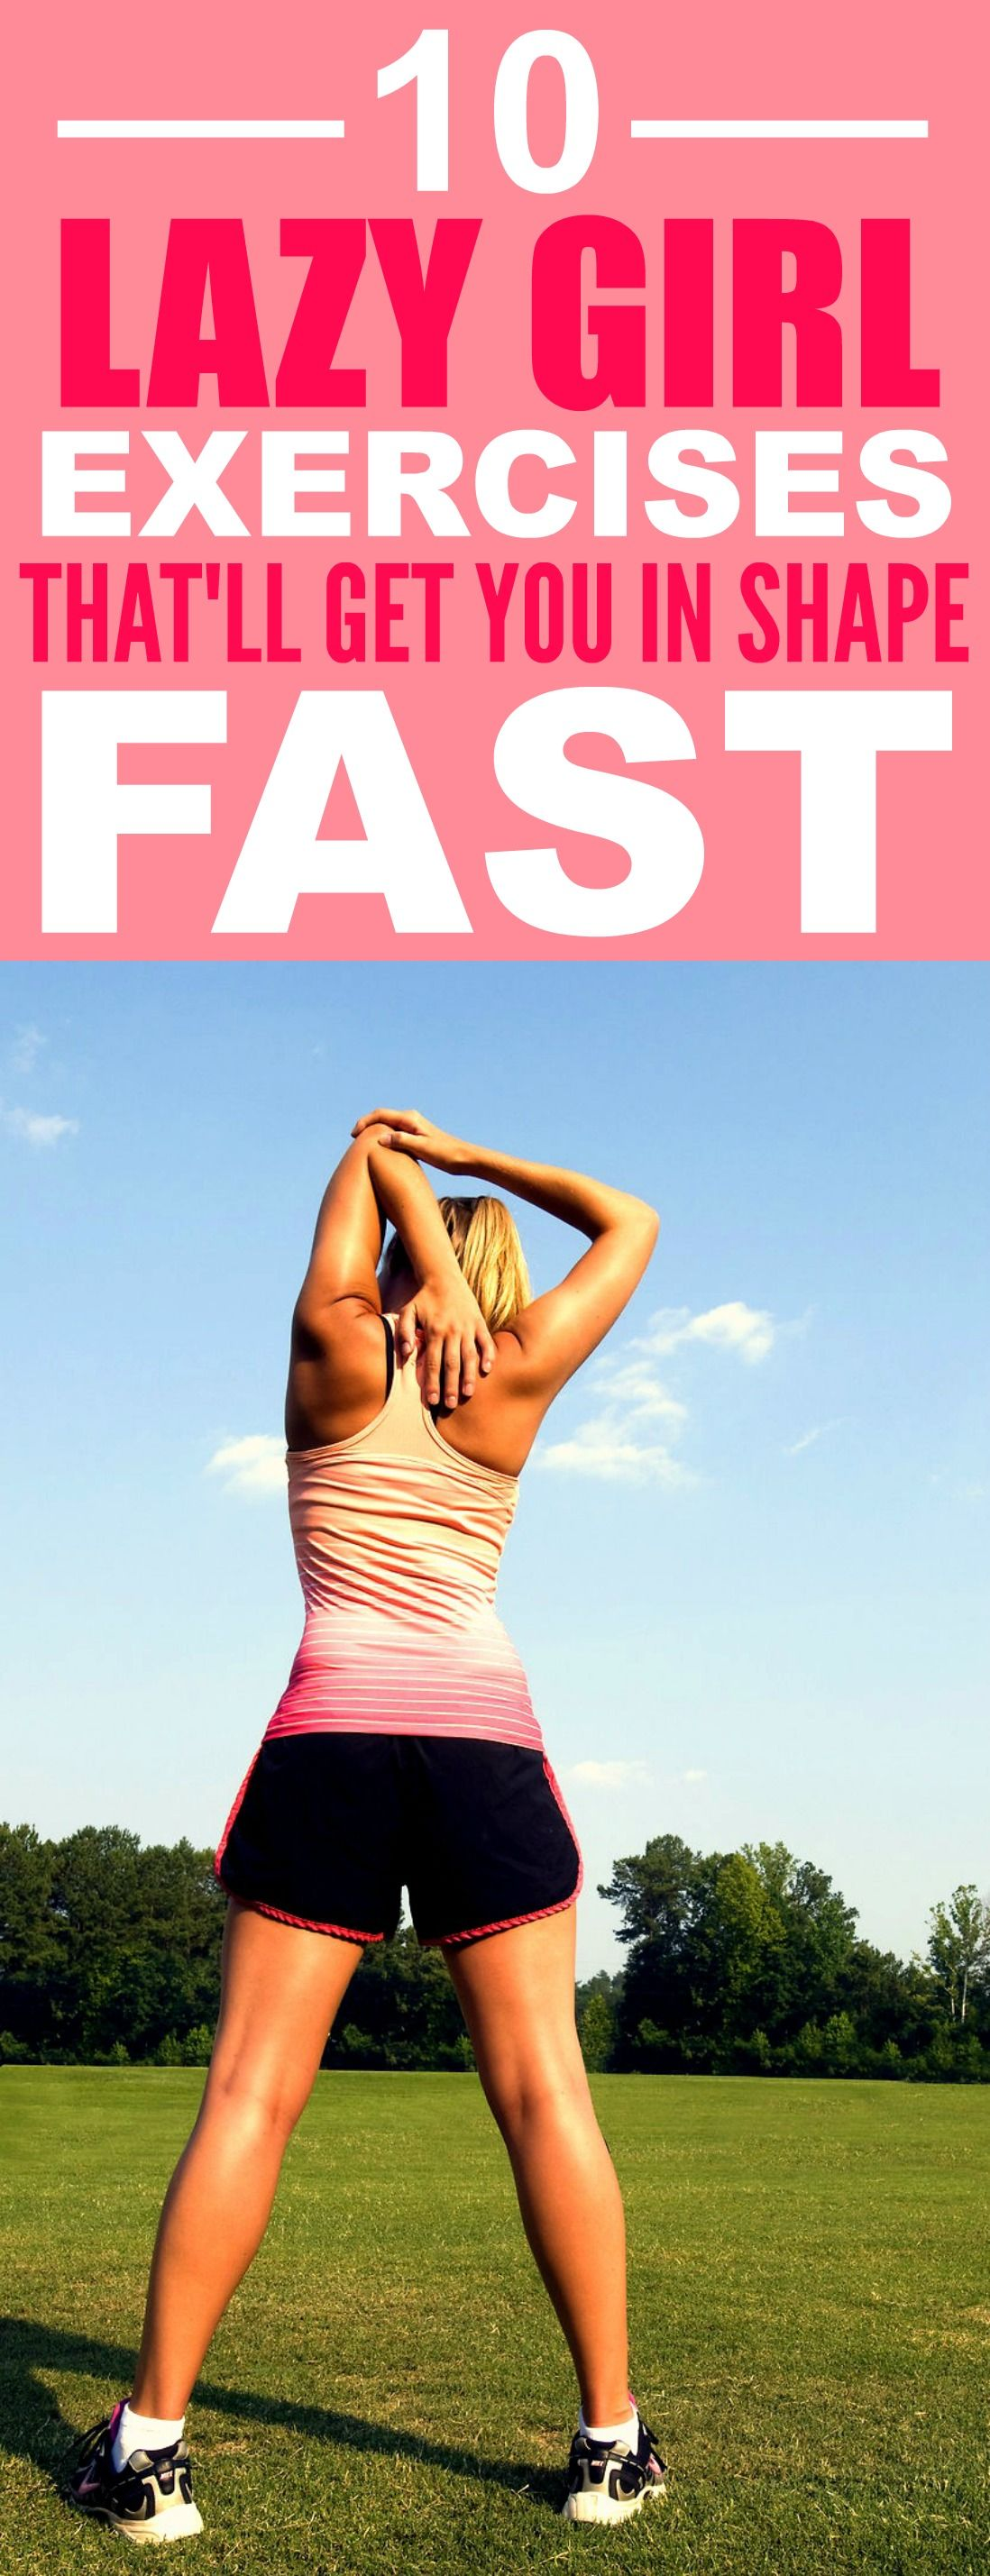 These 10 Lazy Girl Exercises are THE BEST! I'm so glad I found these GREAT tips! Now I can actually lose weight on my own pace! Definitely pinning for later!